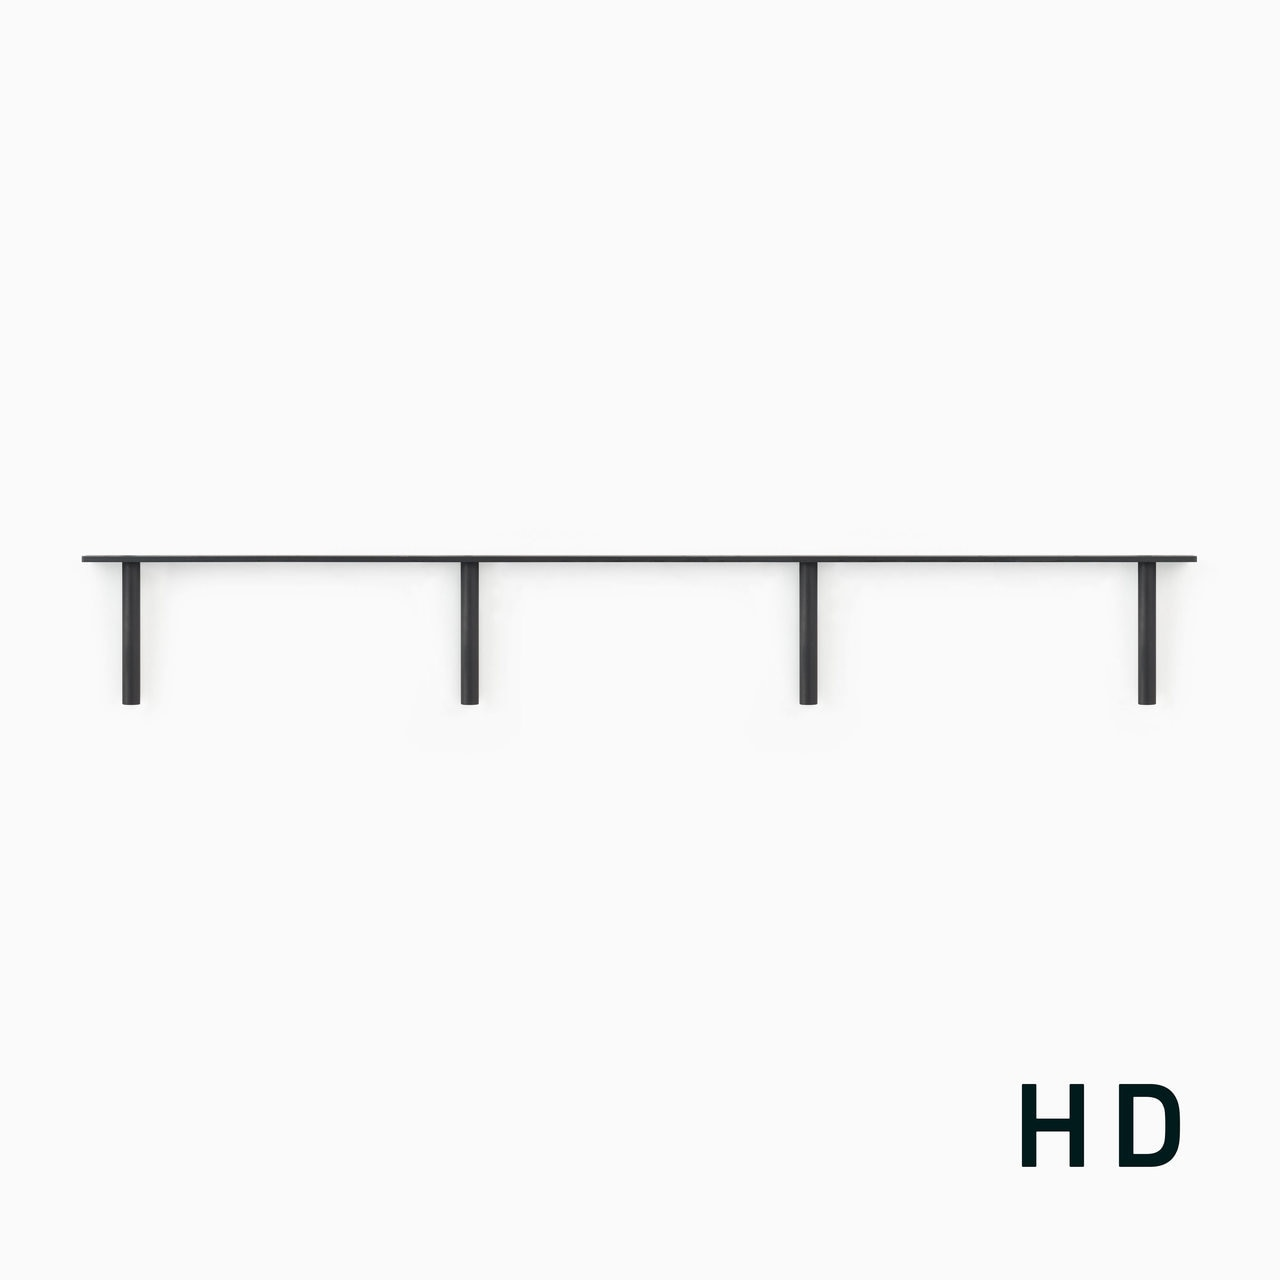 heavy duty floating shelf bracket fits inch aksel front shelves inches white our bar brackets comes lengths and long skinny traditional fireplace mantels wall mounted folding coat